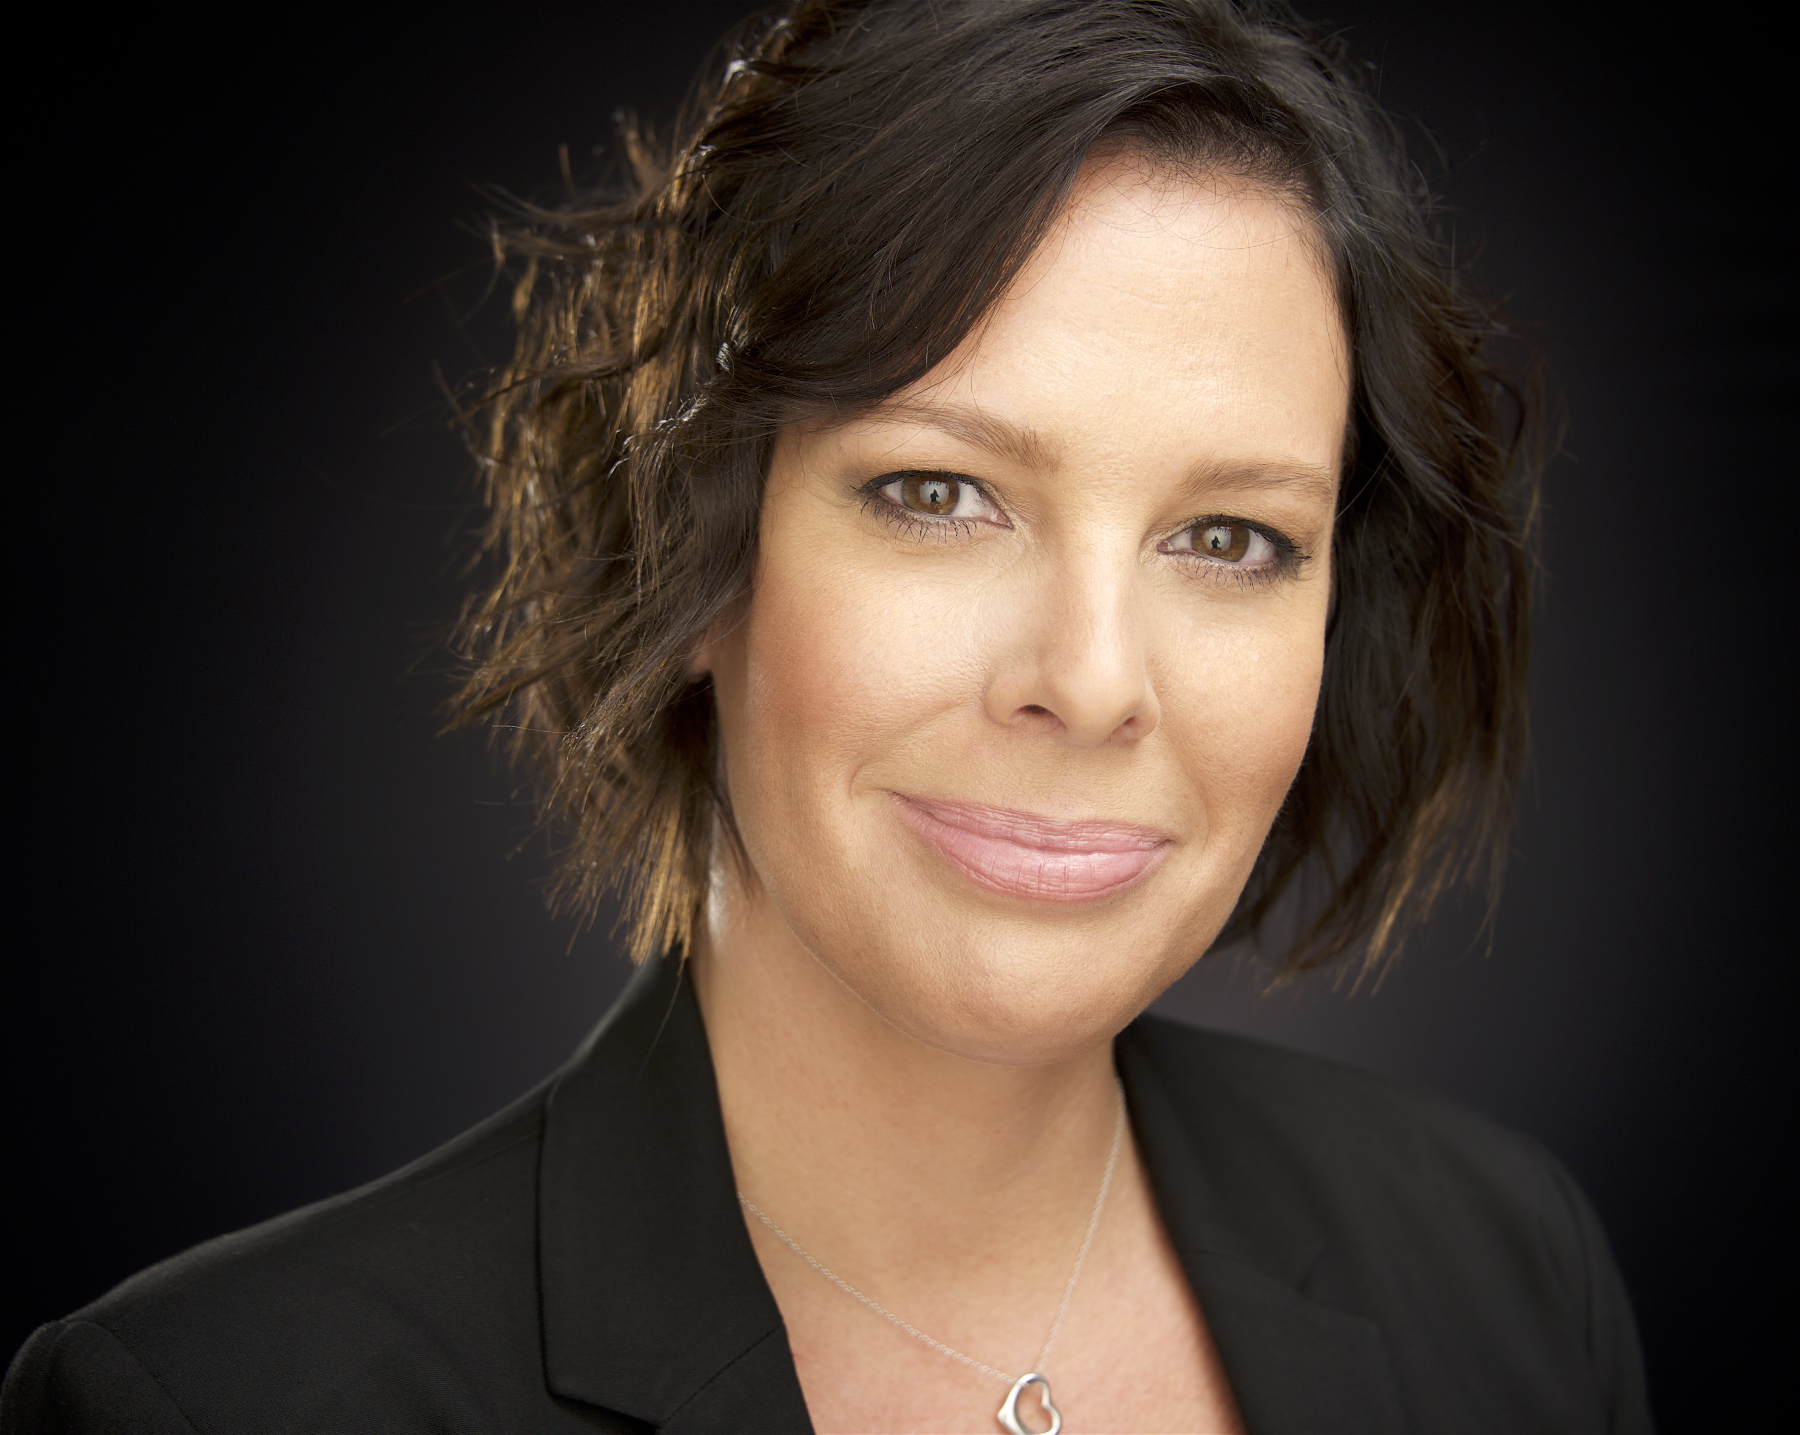 Hudson Valley headshot and corporate photographer